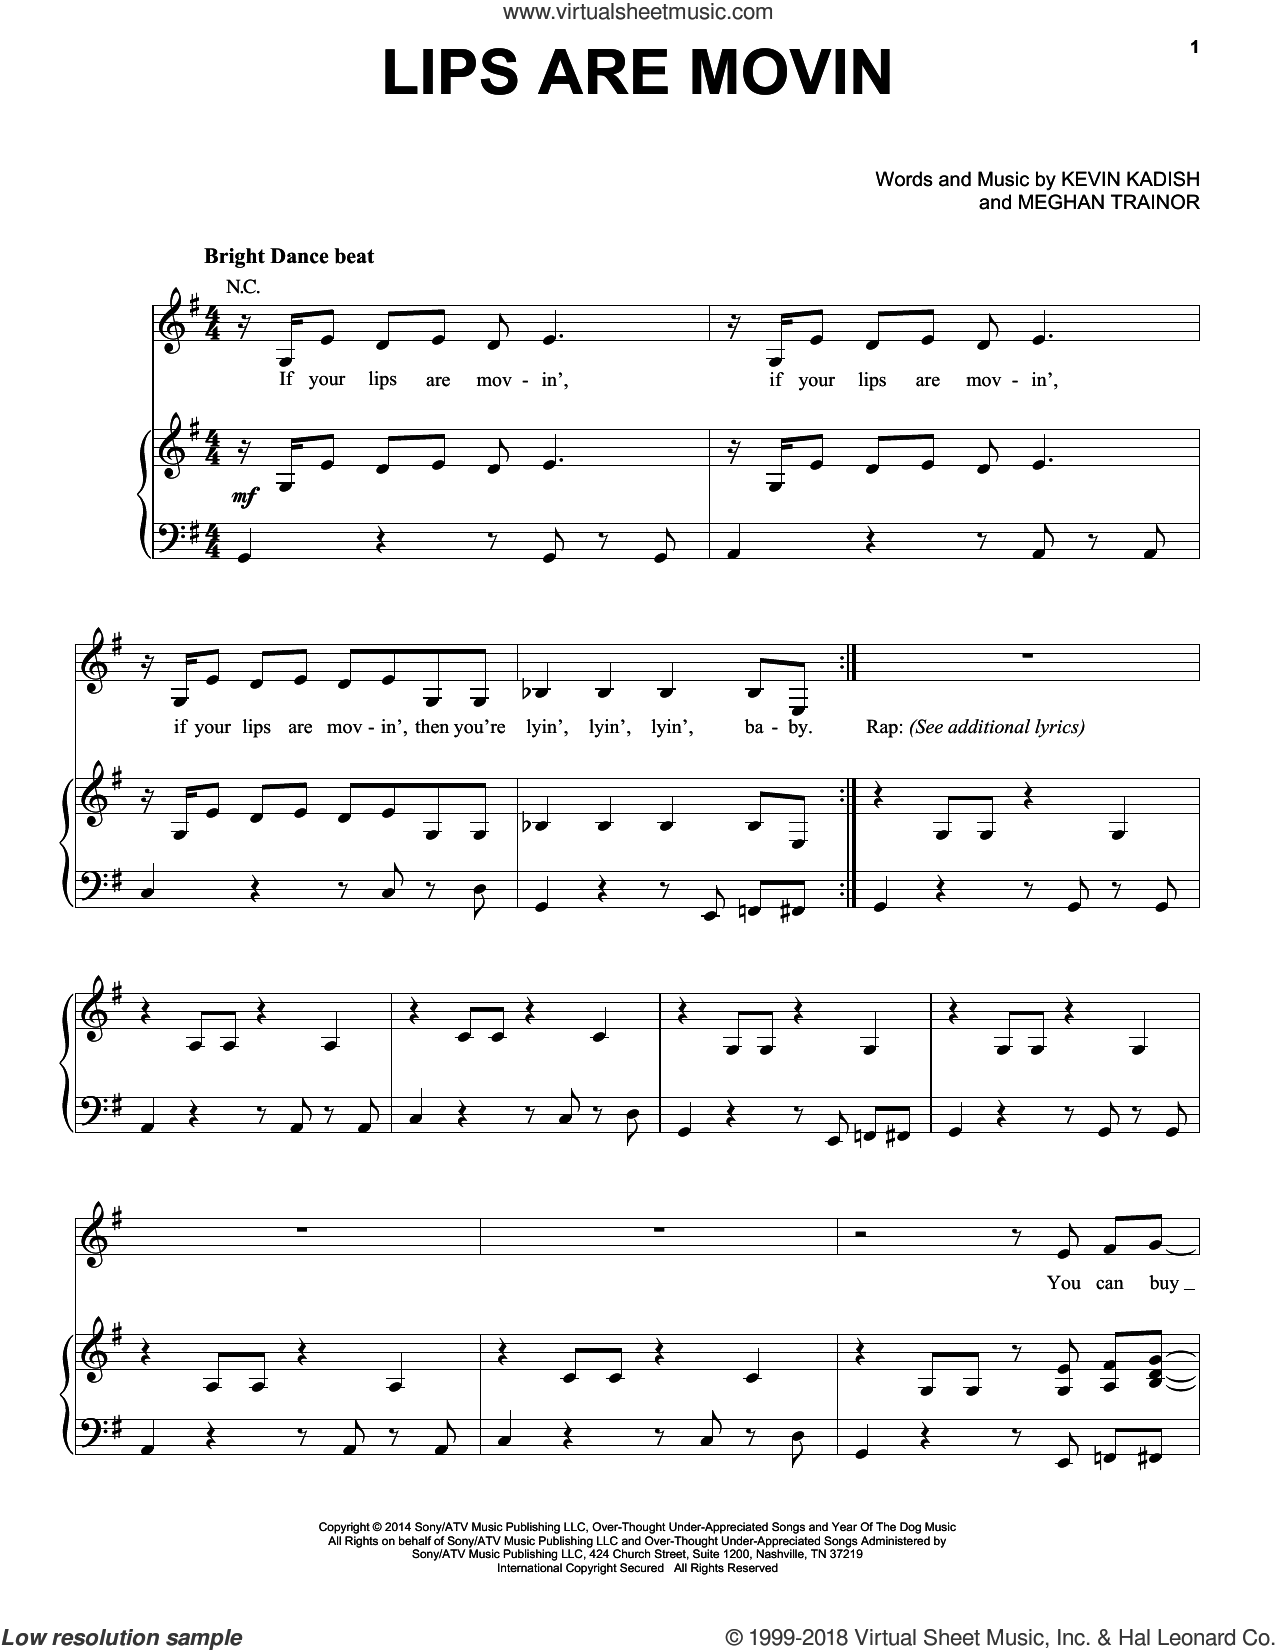 Lips Are Movin sheet music for voice, piano or guitar by Meghan Trainor and Kevin Kadish, intermediate voice, piano or guitar. Score Image Preview.